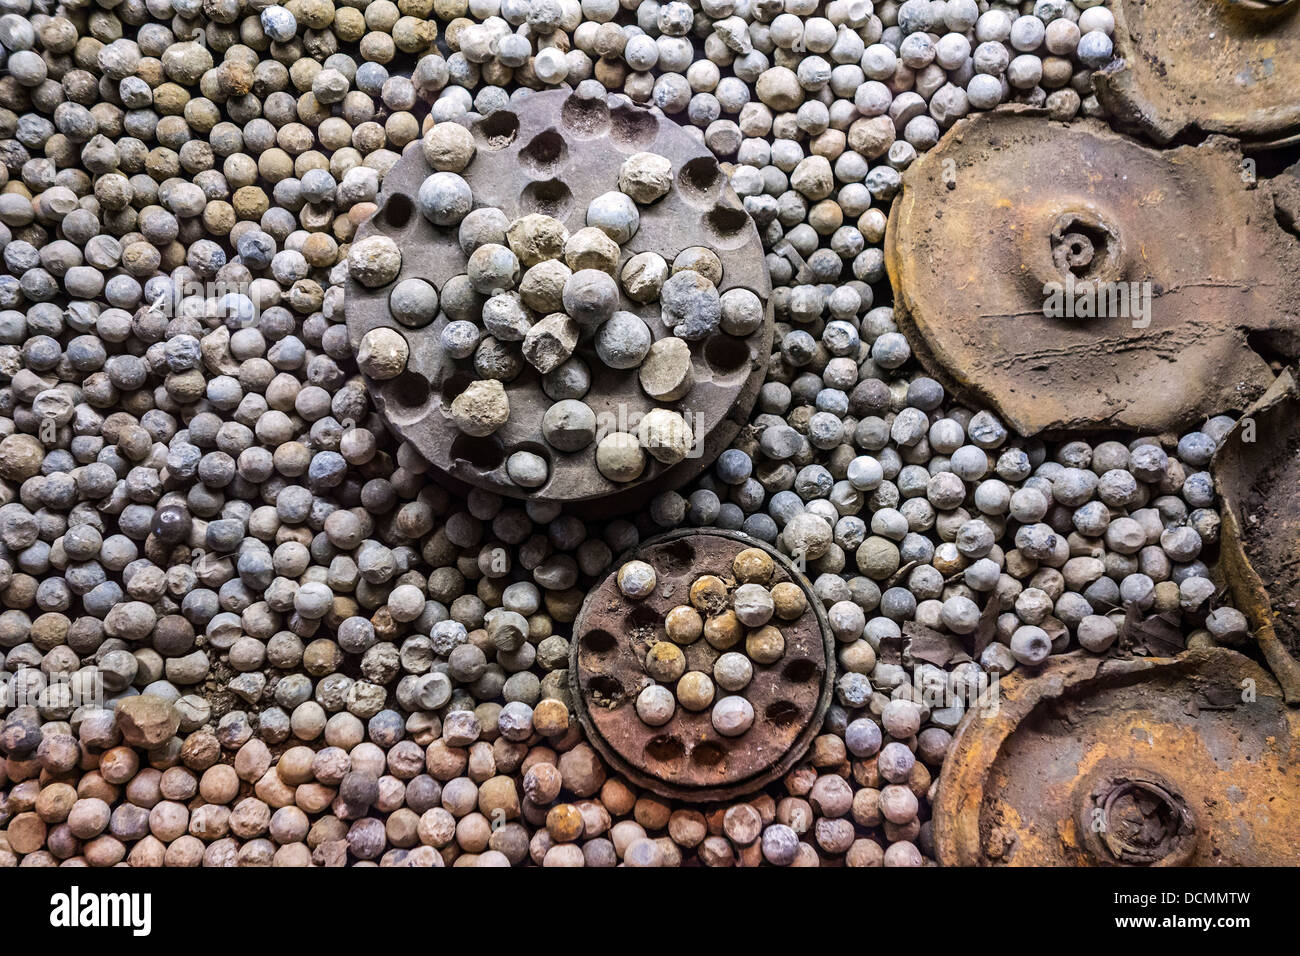 WWI ammunition bullets of exploded shrapnel shells from the First World War One at Ypres, West Flanders, Belgium - Stock Image